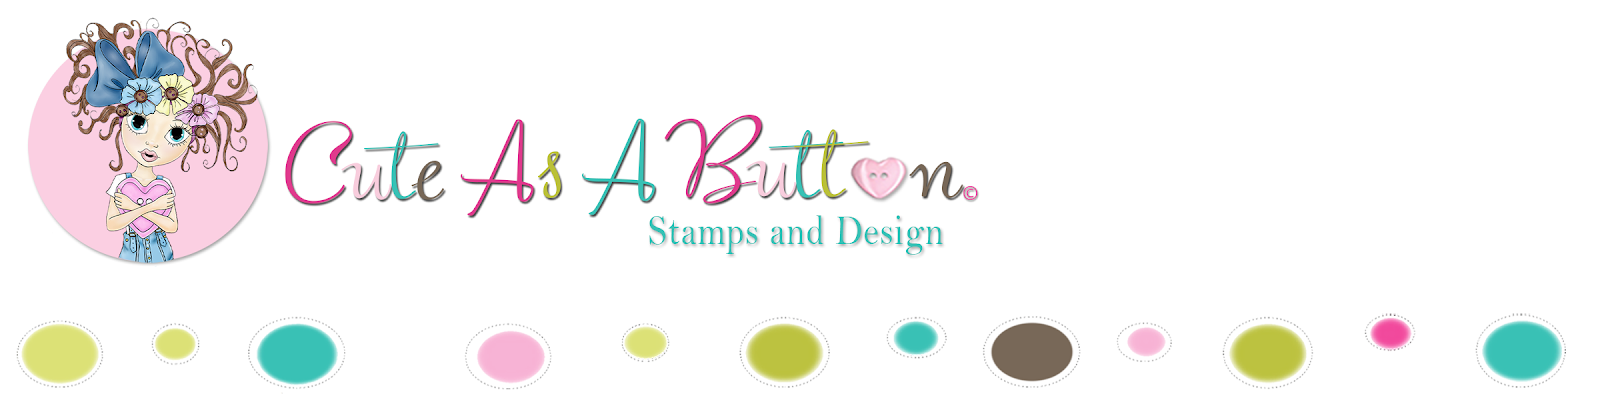 Cute As A Button Shop